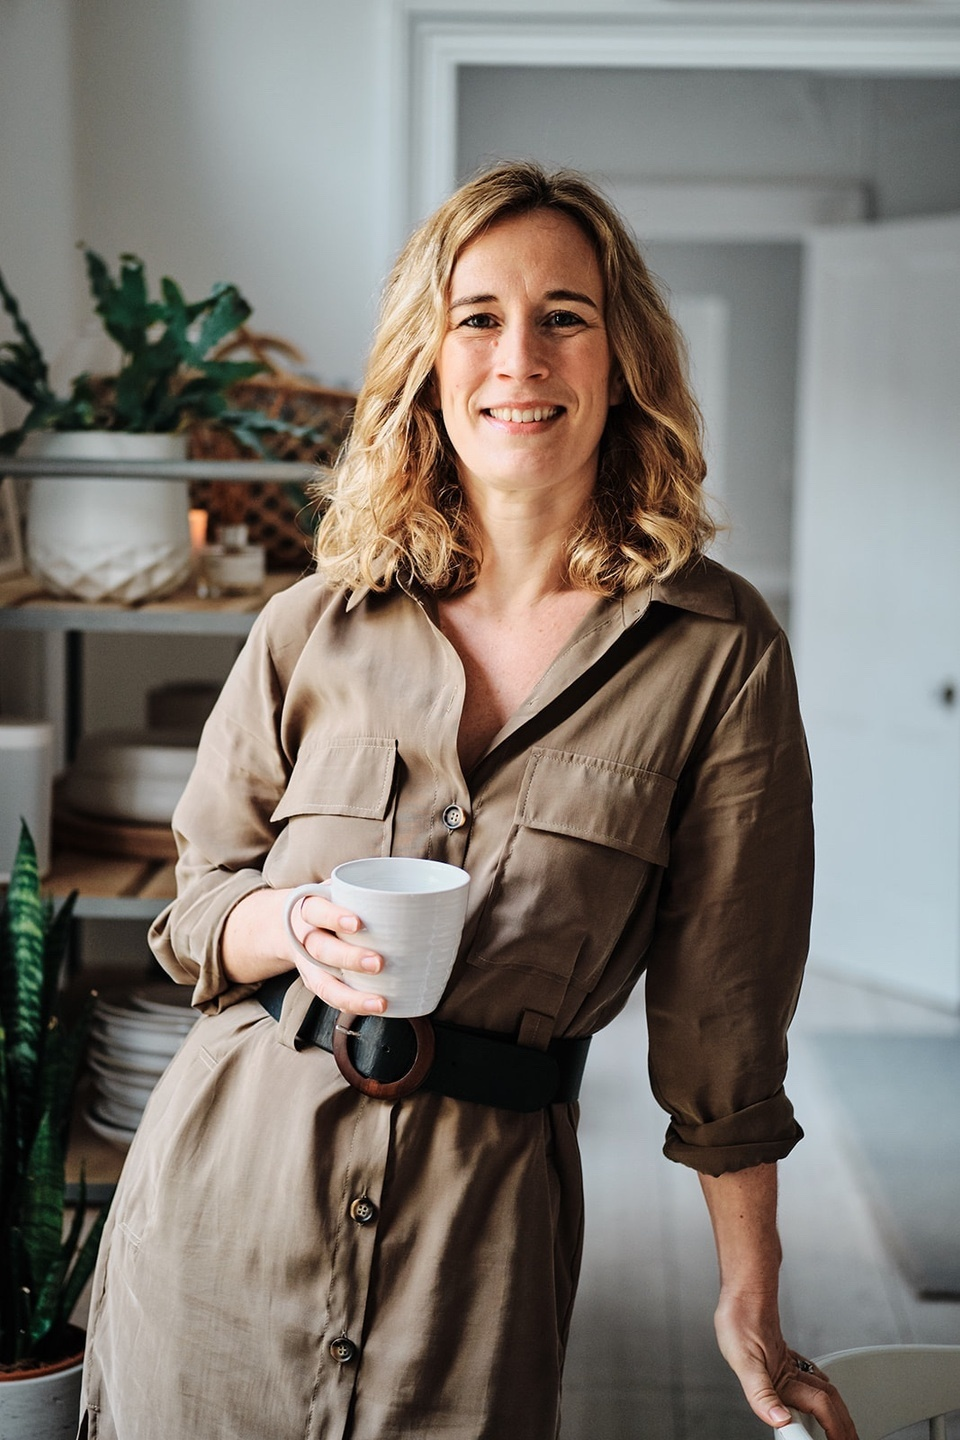 Picture of Zoe Hawkins smiling holding a mug